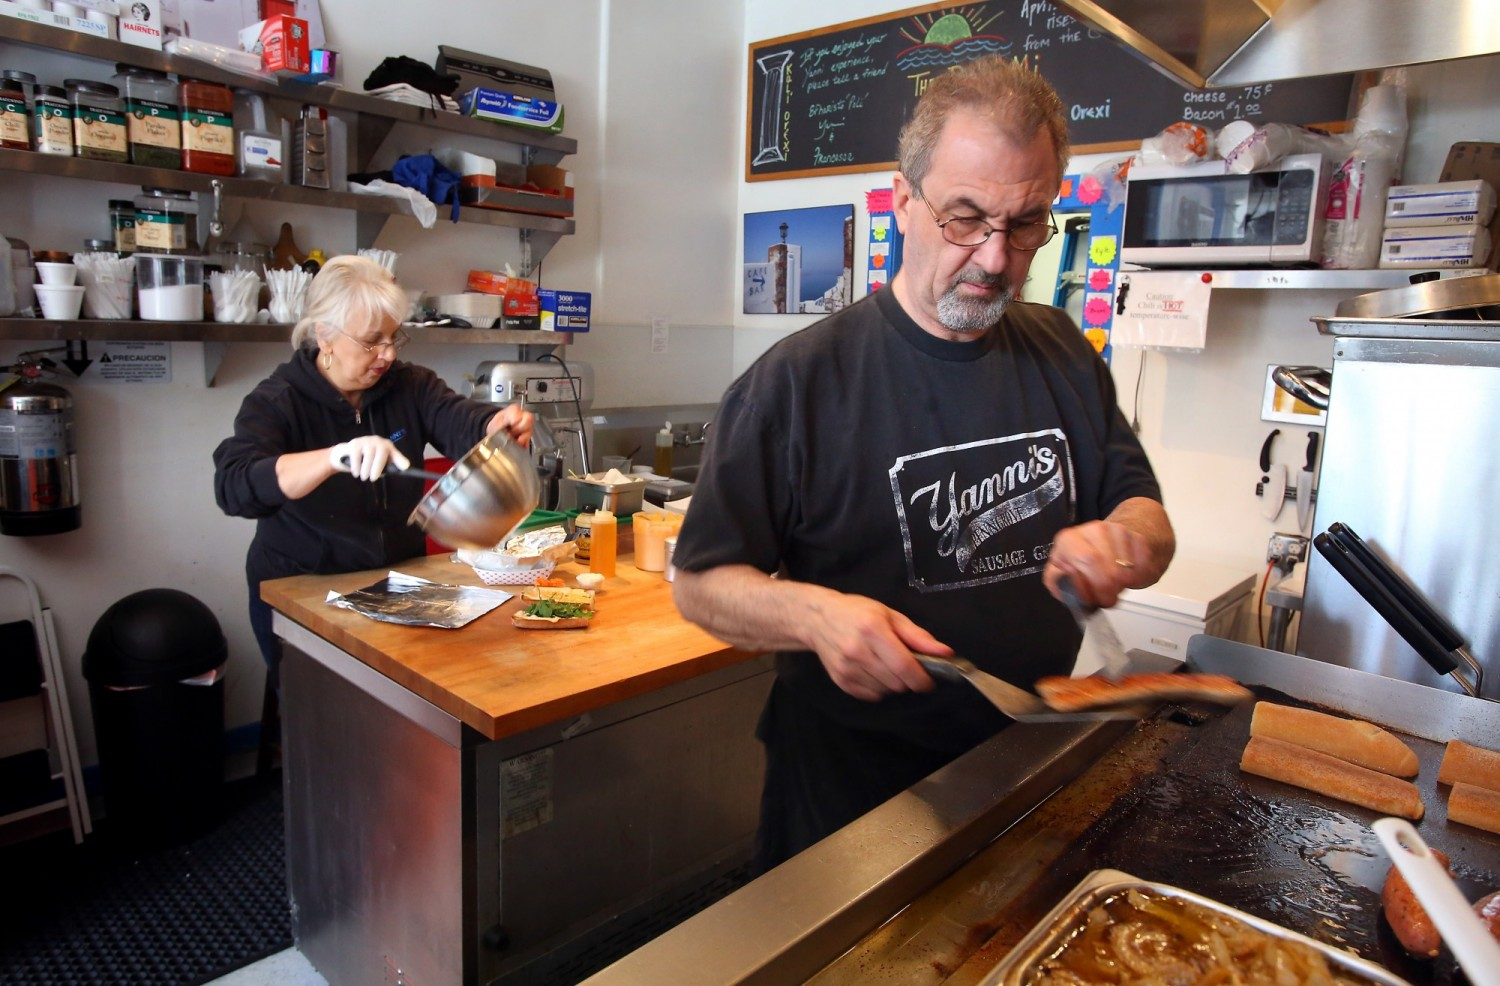 John Vrattos cooks a sausage on the grill as his wife Francesca prepares Greek fries at their Penngrove restaurant, Yanni's Sausage Grill. They have been married for 35 years. (Christopher Chung / The Press Democrat)